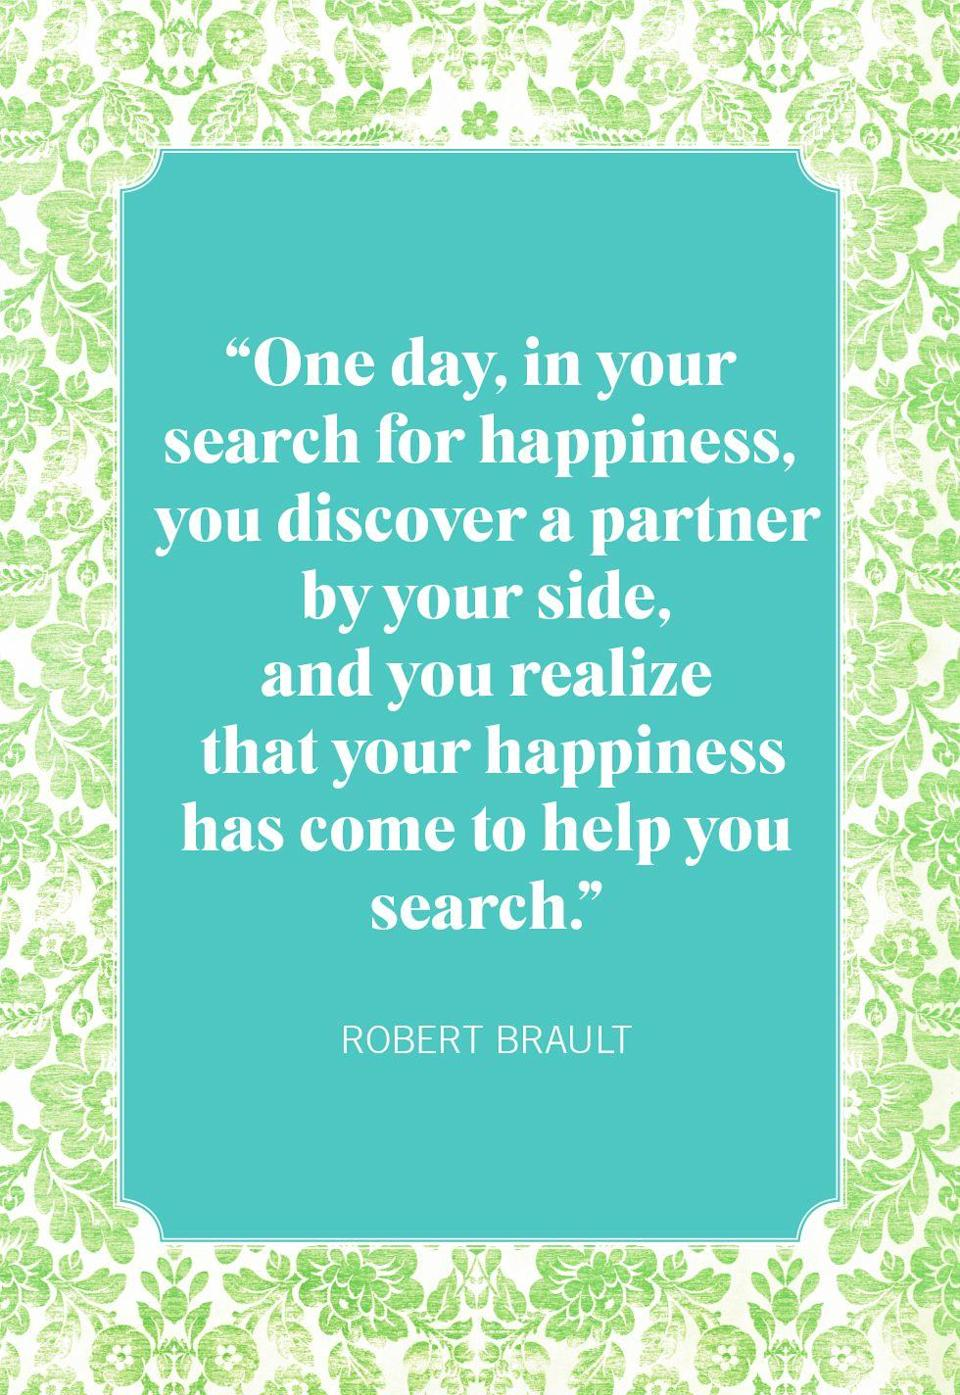 """<p>""""One day, in your search for happiness, you discover a partner by your side, and you realize that your happiness has come to help you search.""""</p>"""